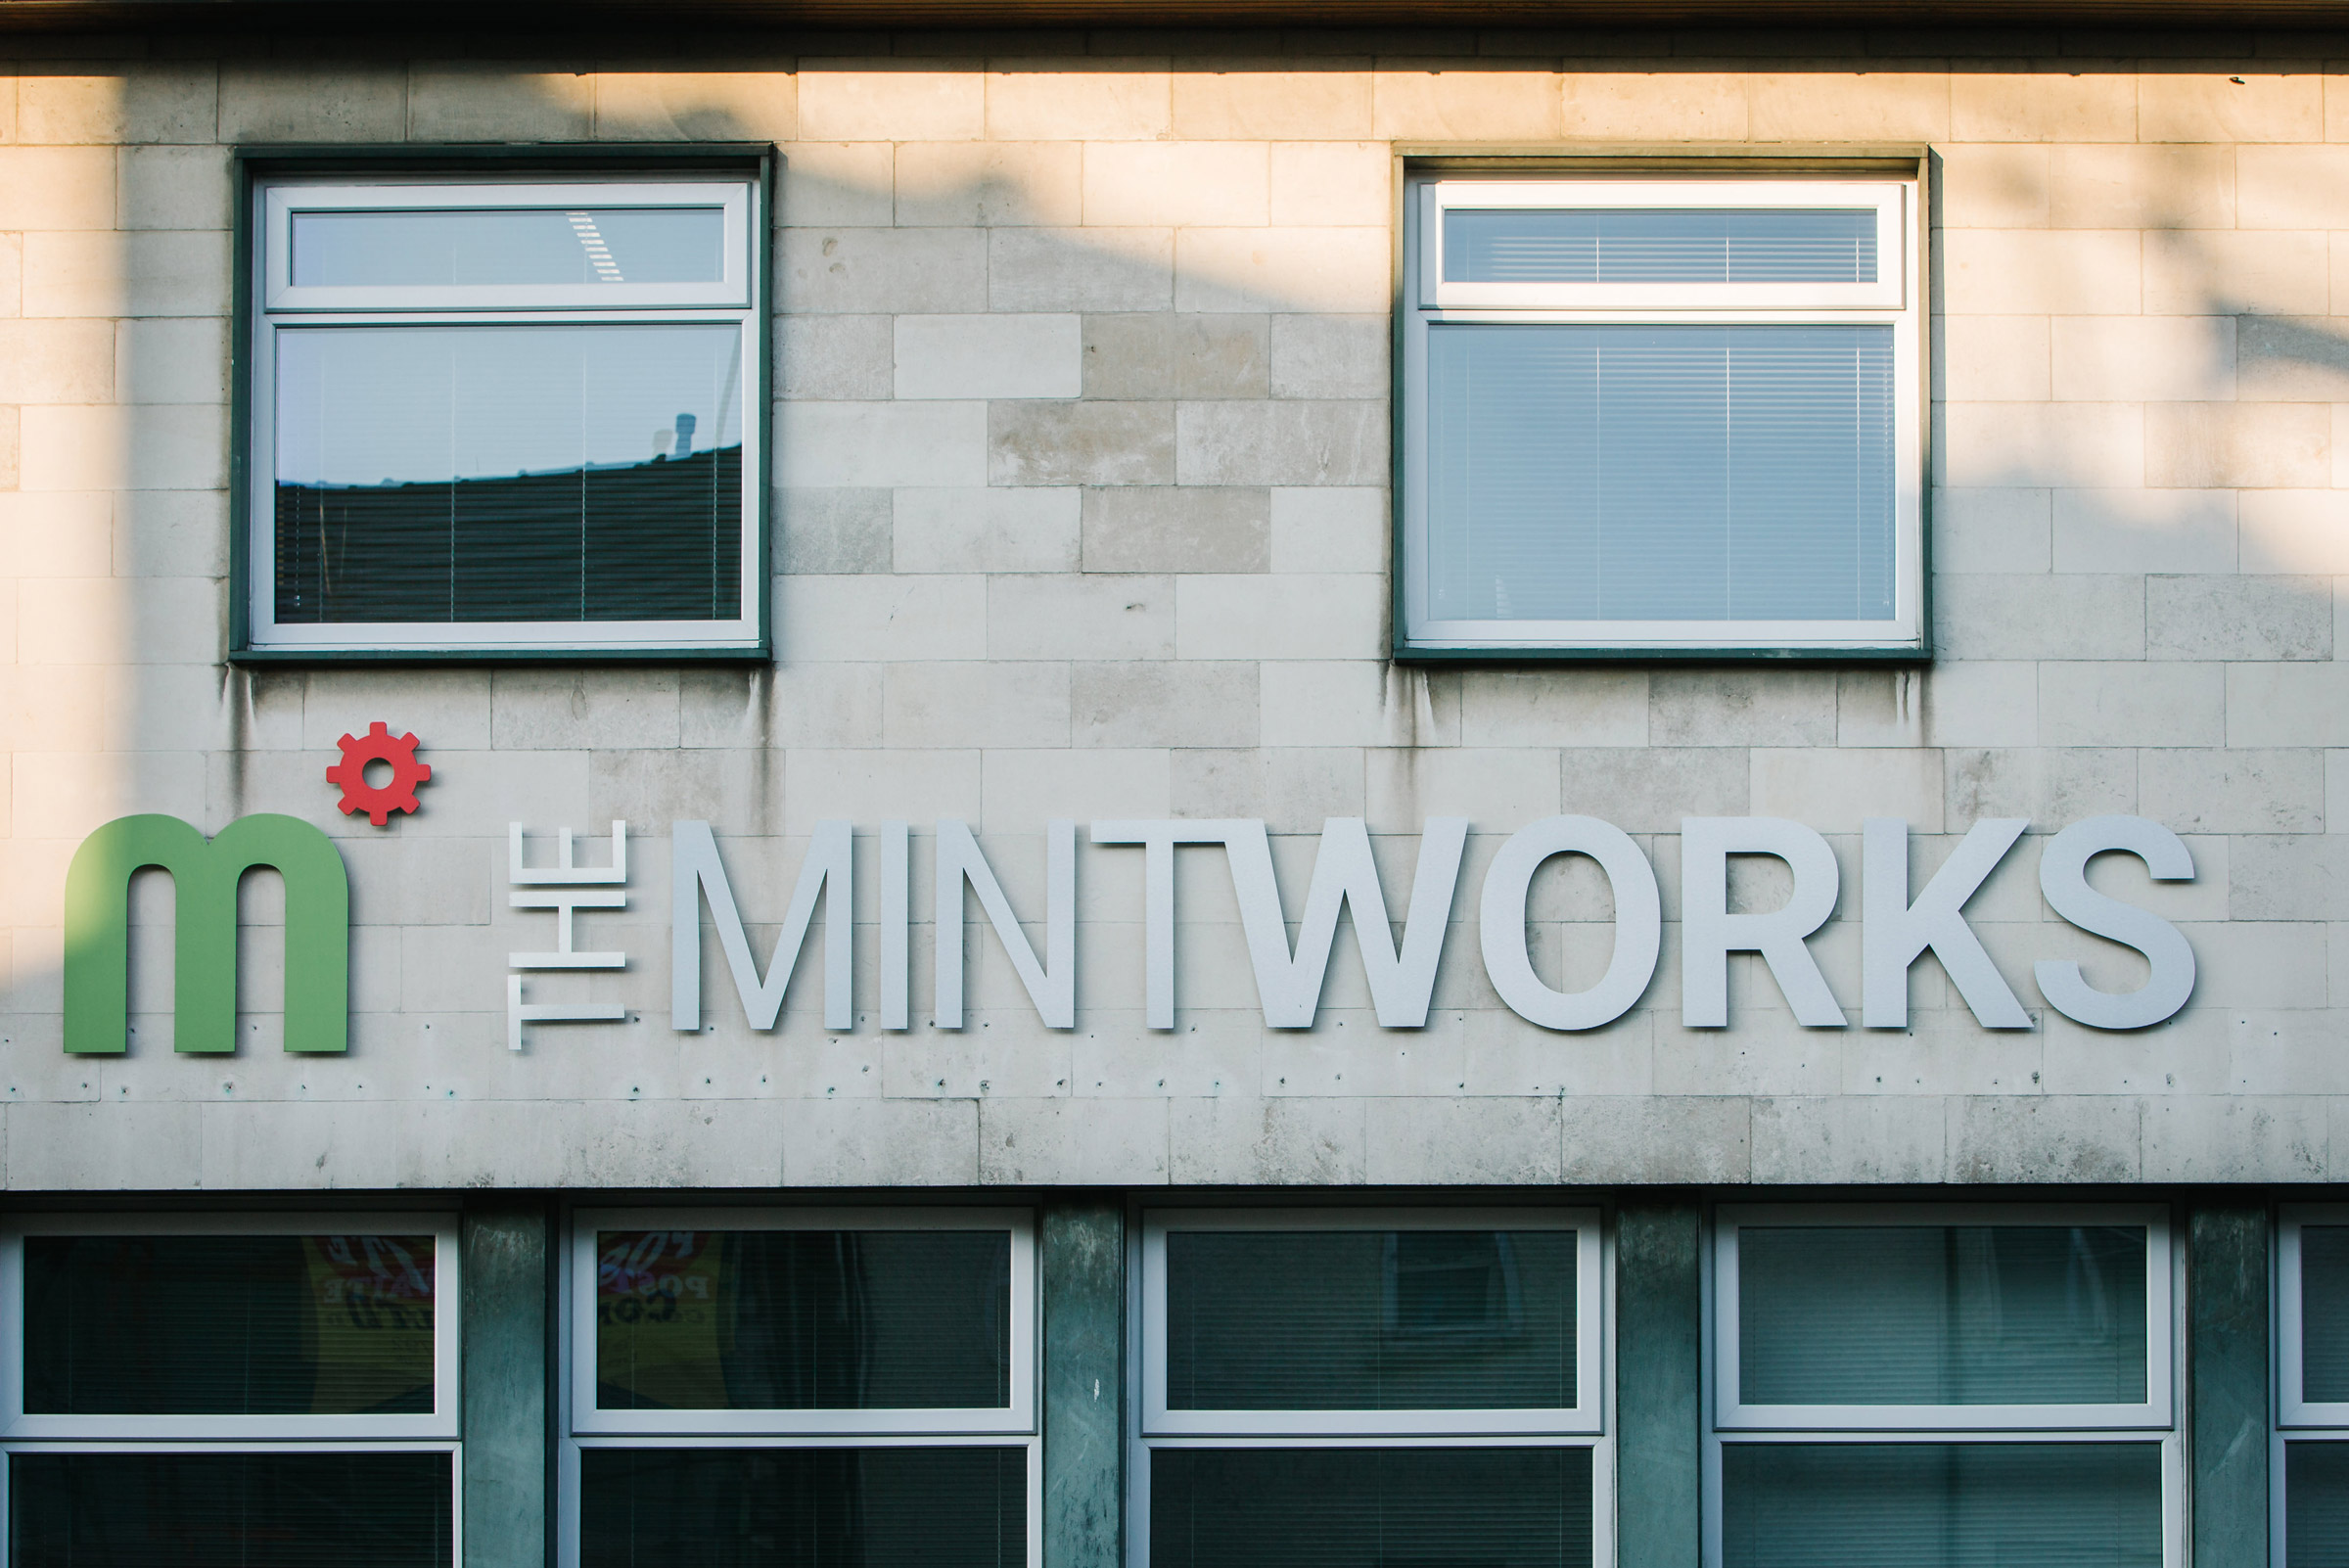 The MintWorks Kendal signage on the exterior of the building